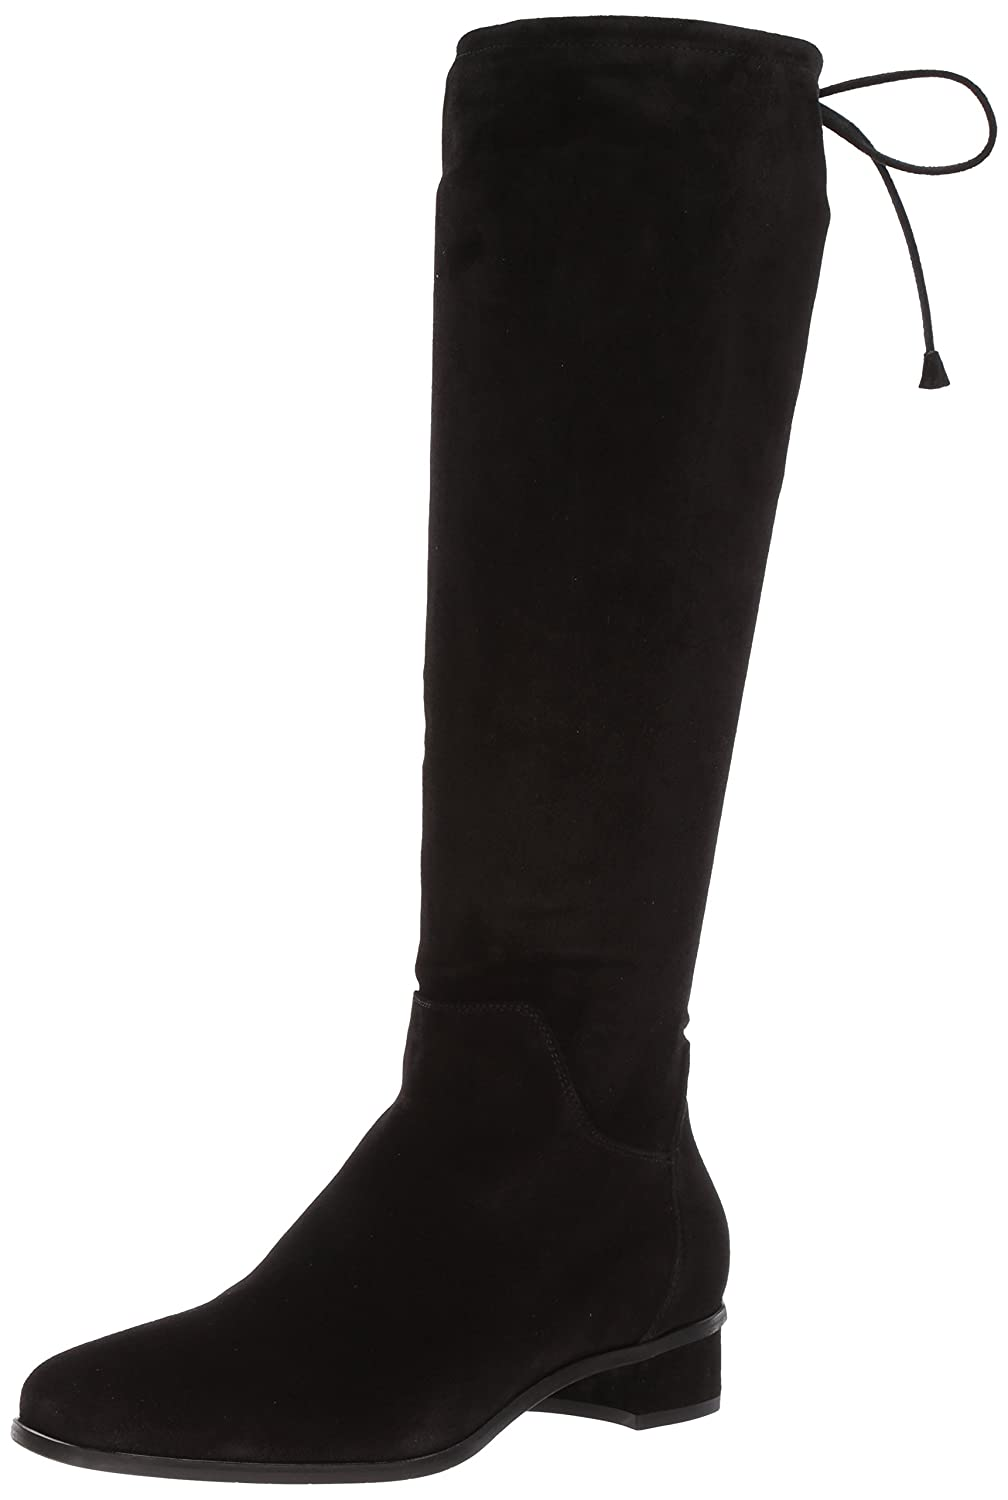 Aquatalia Women's Lisandra Suede Over The Knee Boot B06X6GGDFP 10.5 B(M) US|Black